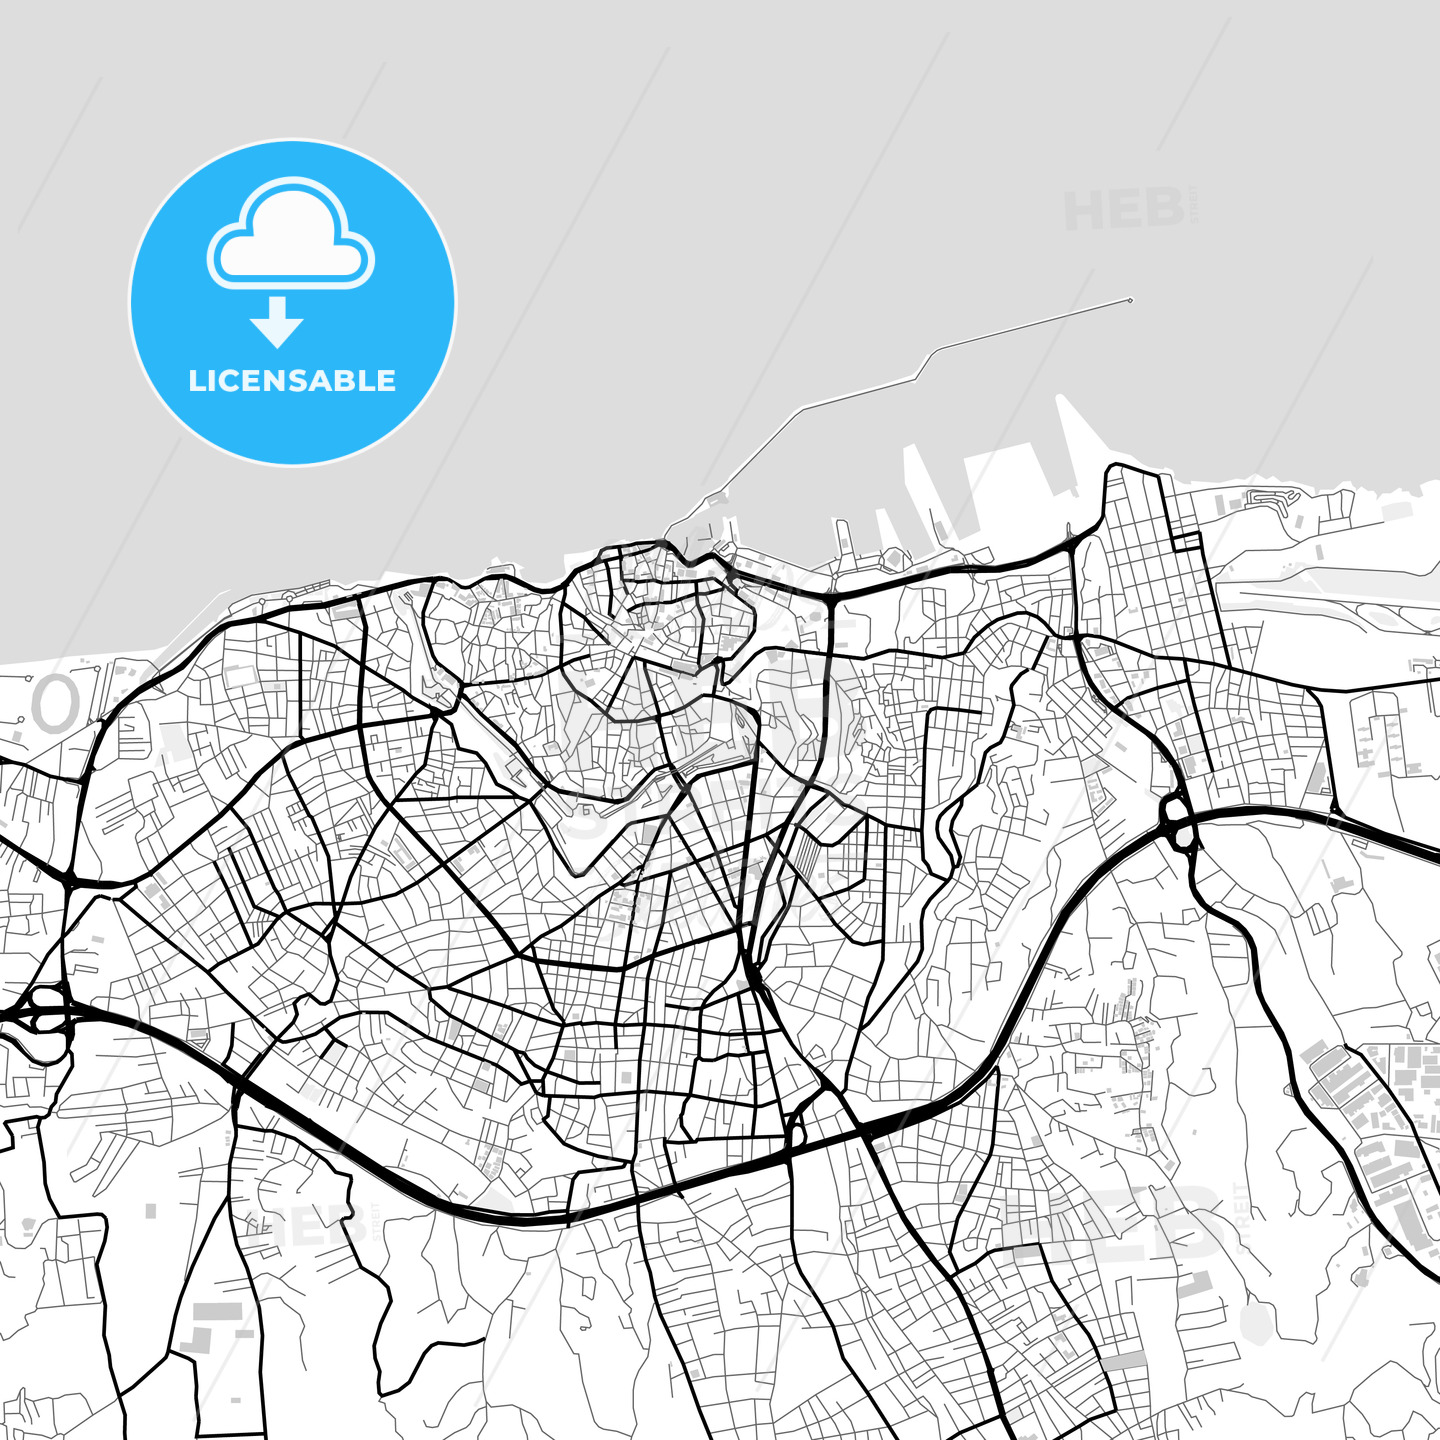 Downtown map of Heraklion, Greece - HEBSTREITS